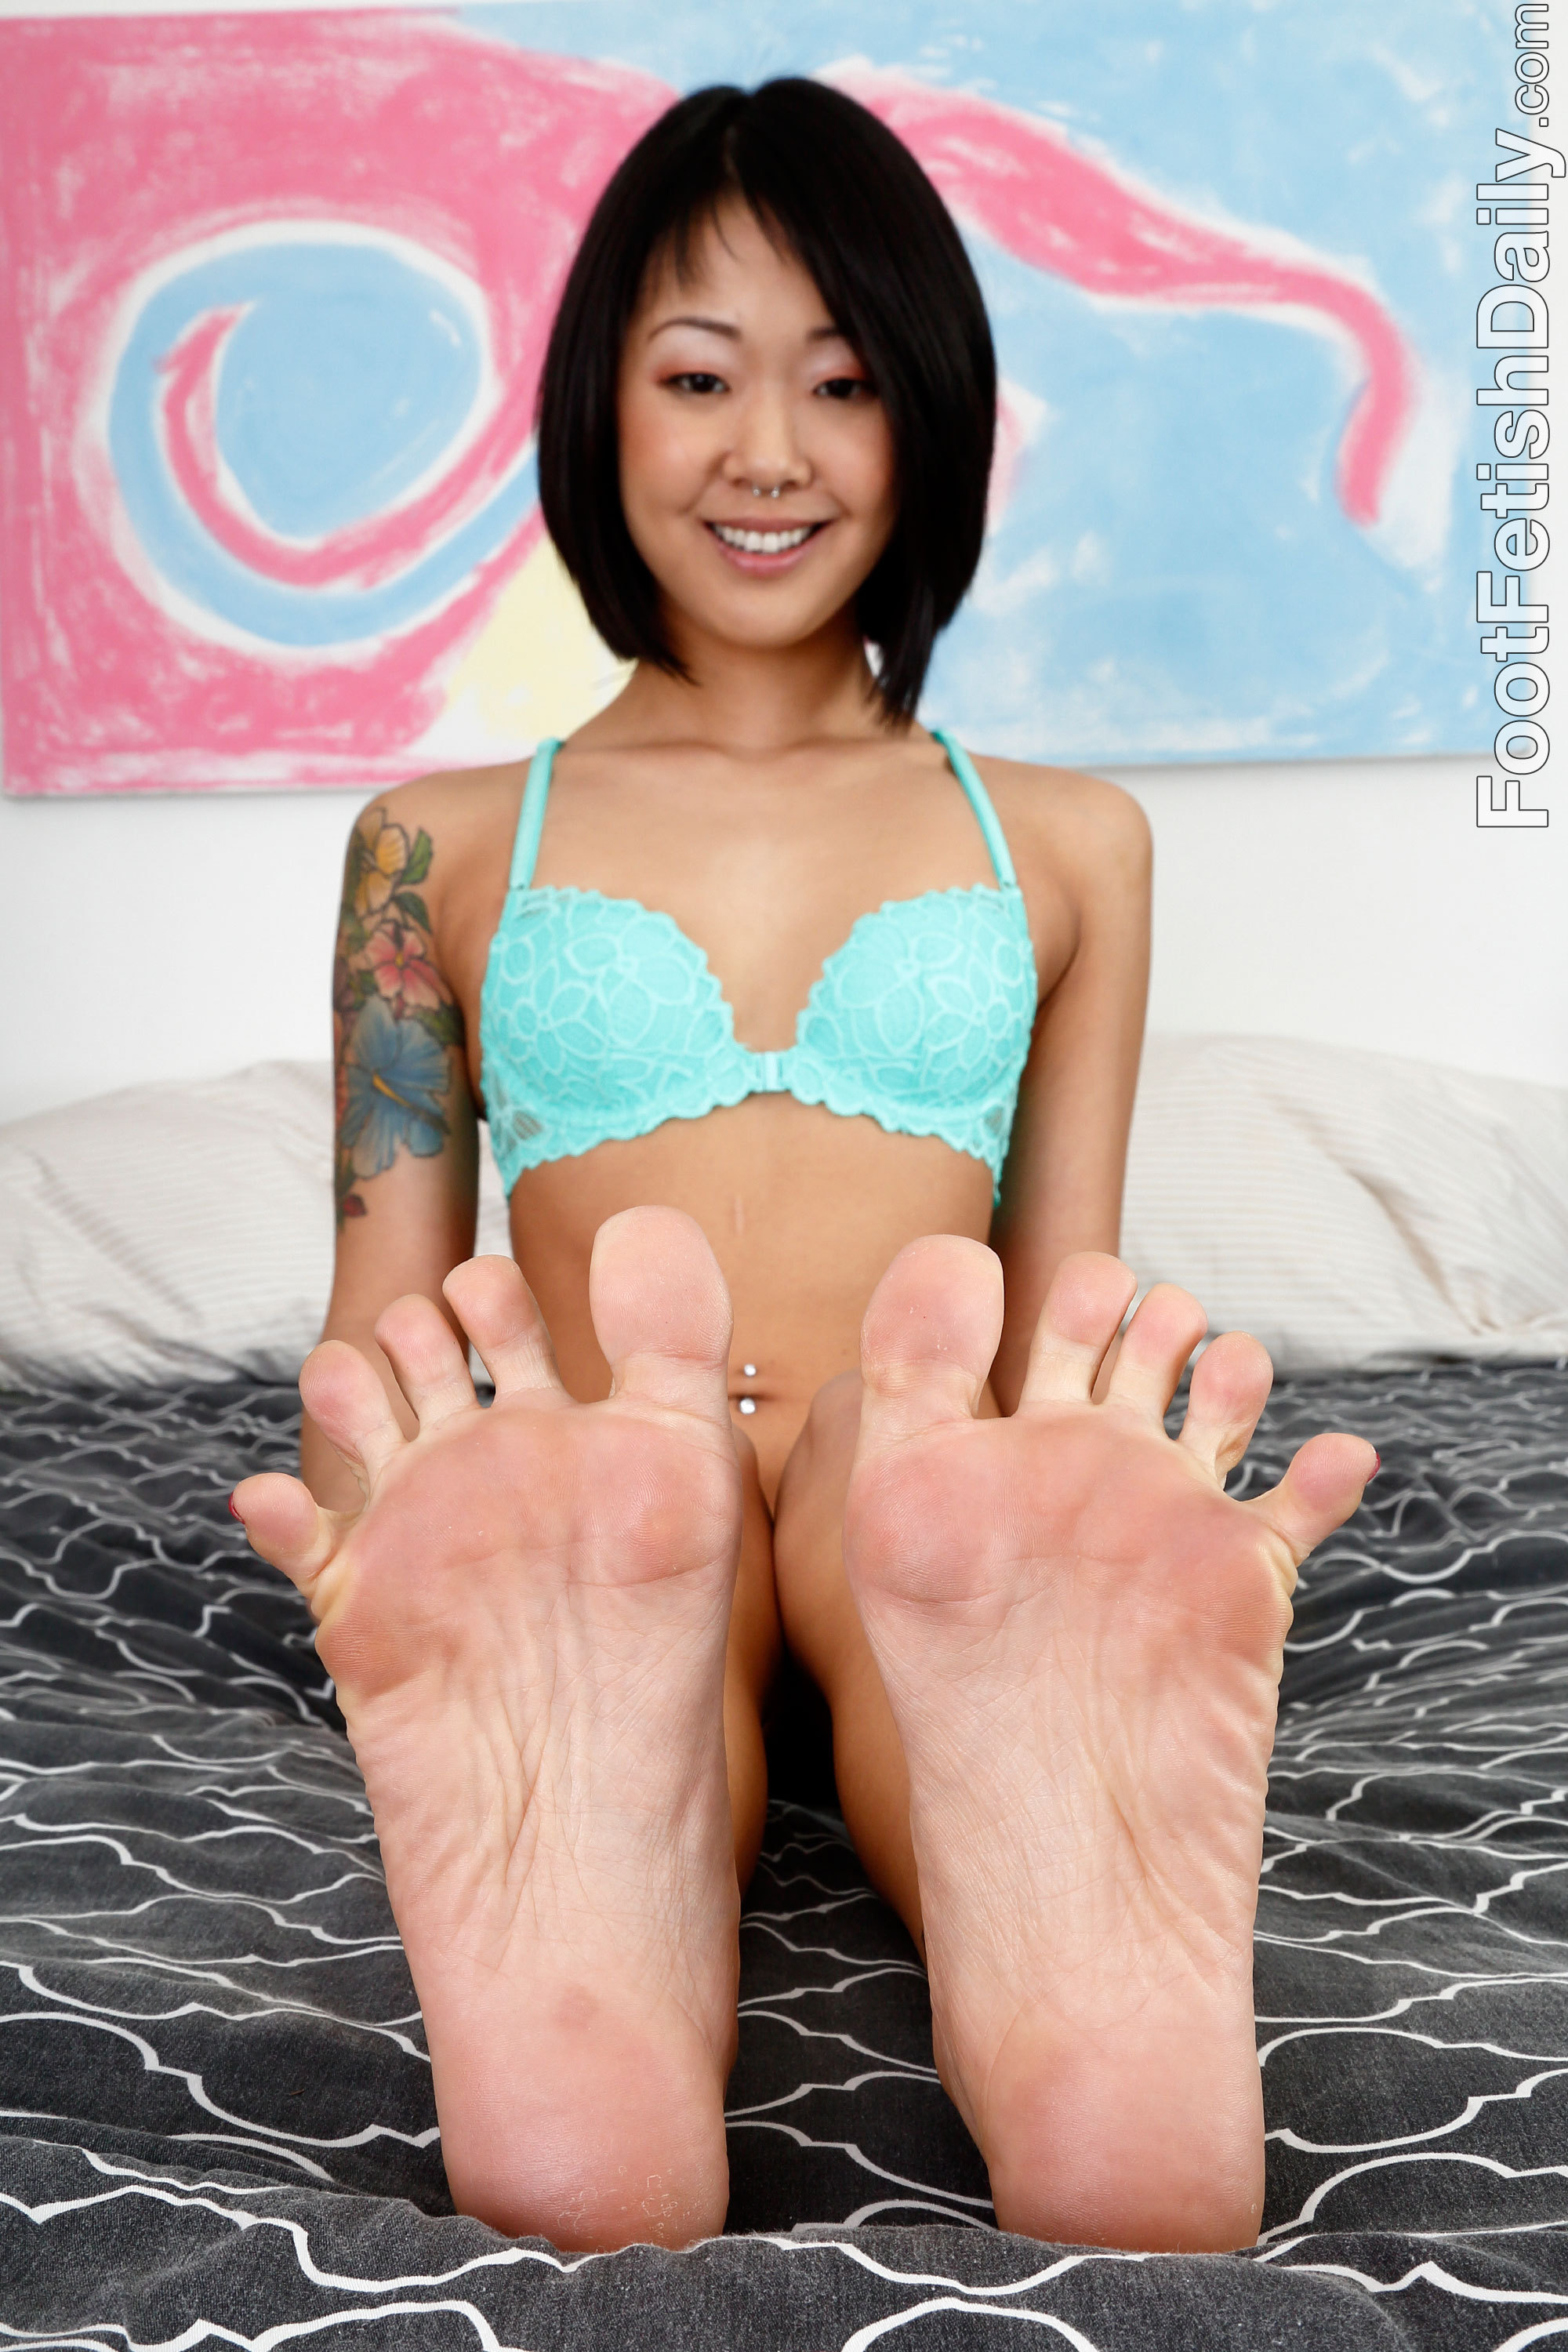 The feet that open like petals of flowers 2